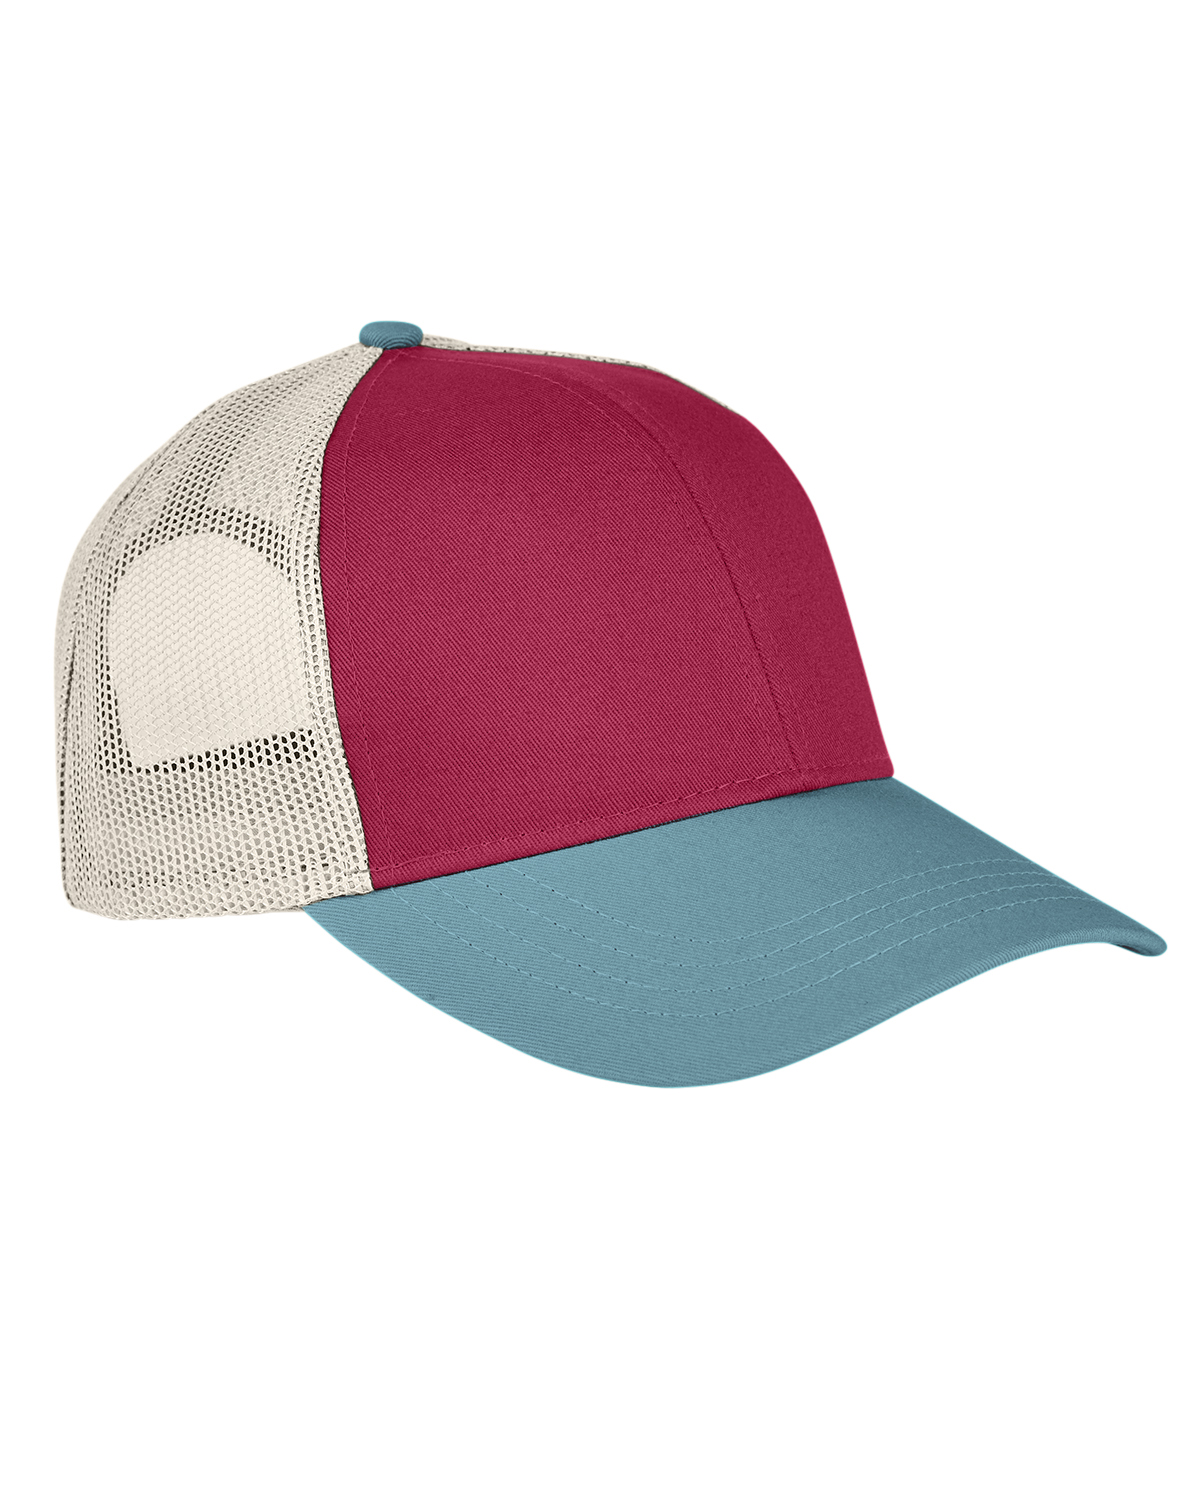 Authentic Pigment AP1919 - Tri-Color Trucker Cap